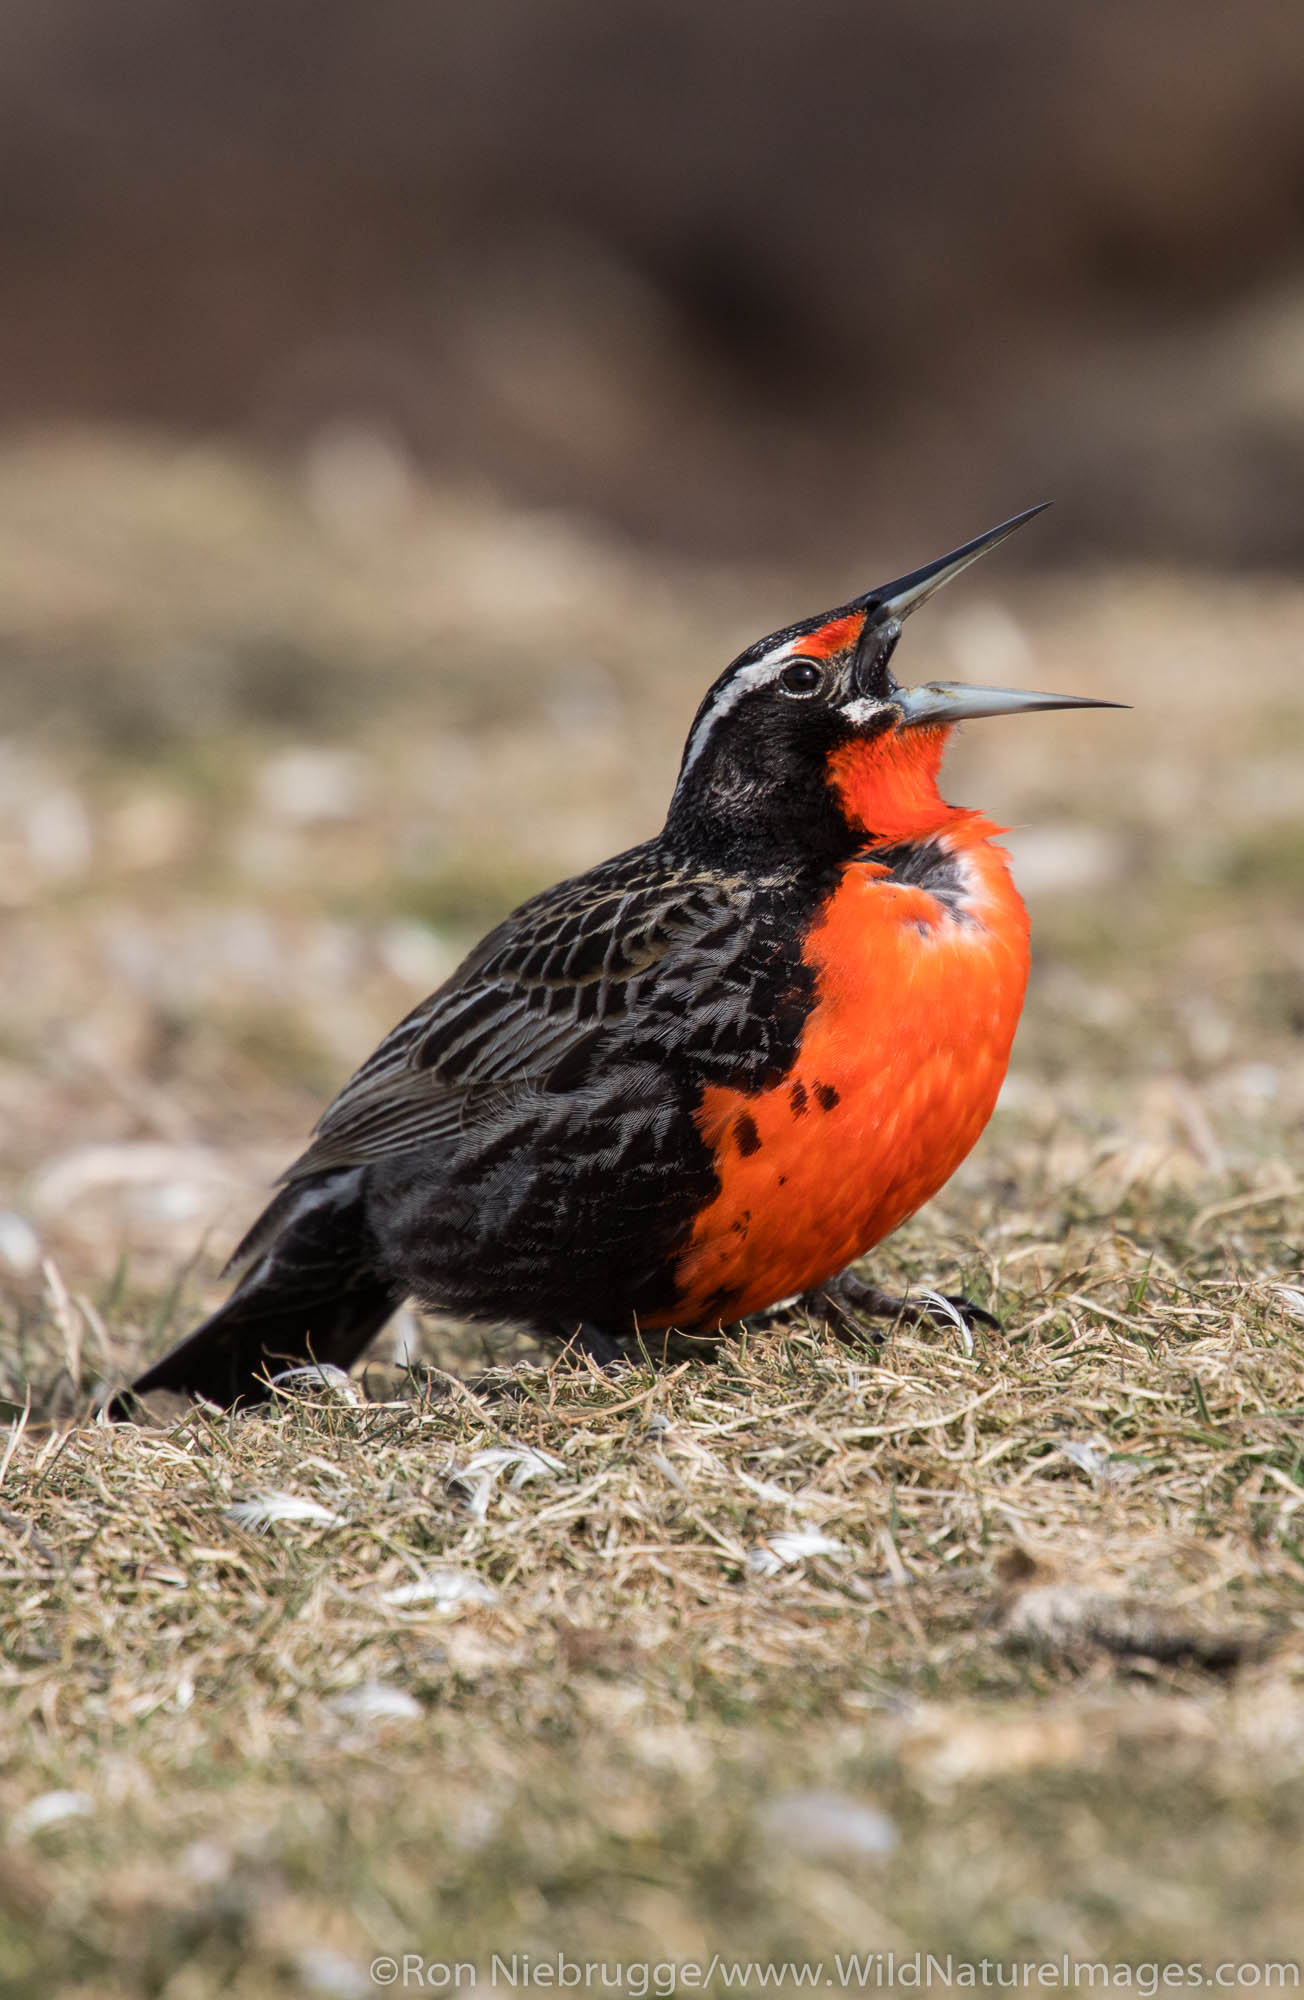 Long-tailed meadowlark, Carcass Island, Falkland Islands.